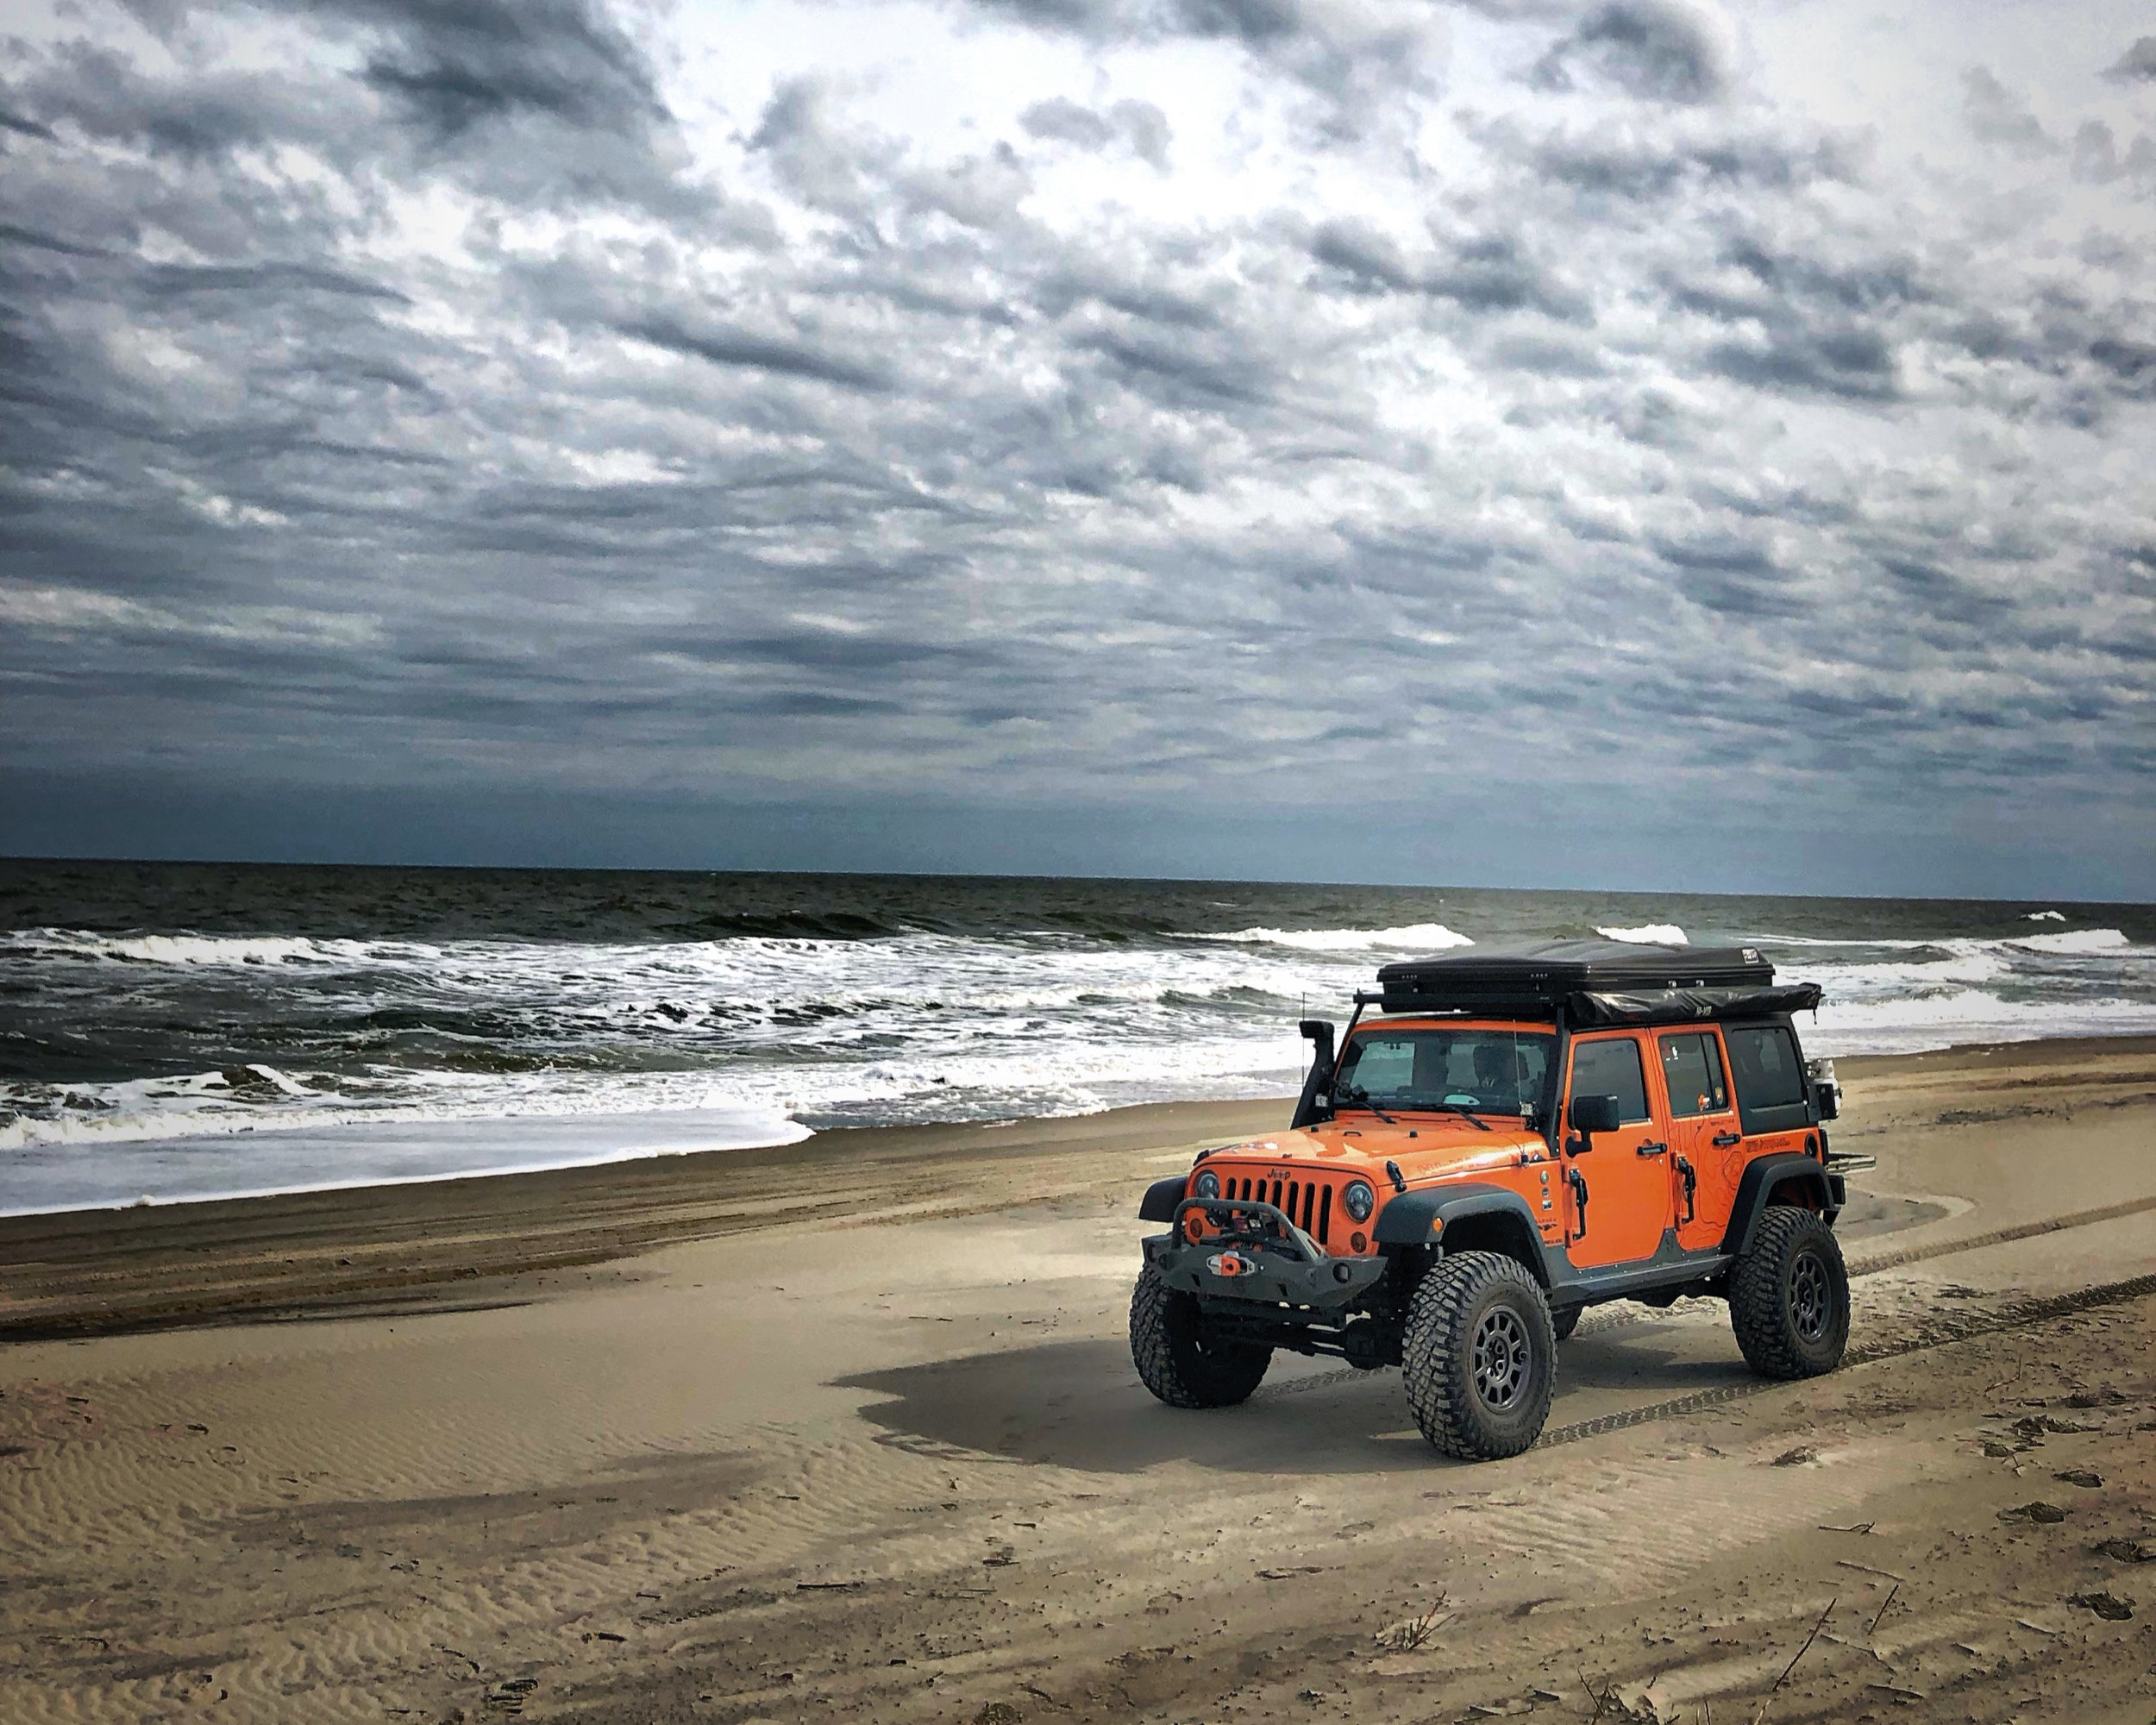 jeep+on+beach.jpg